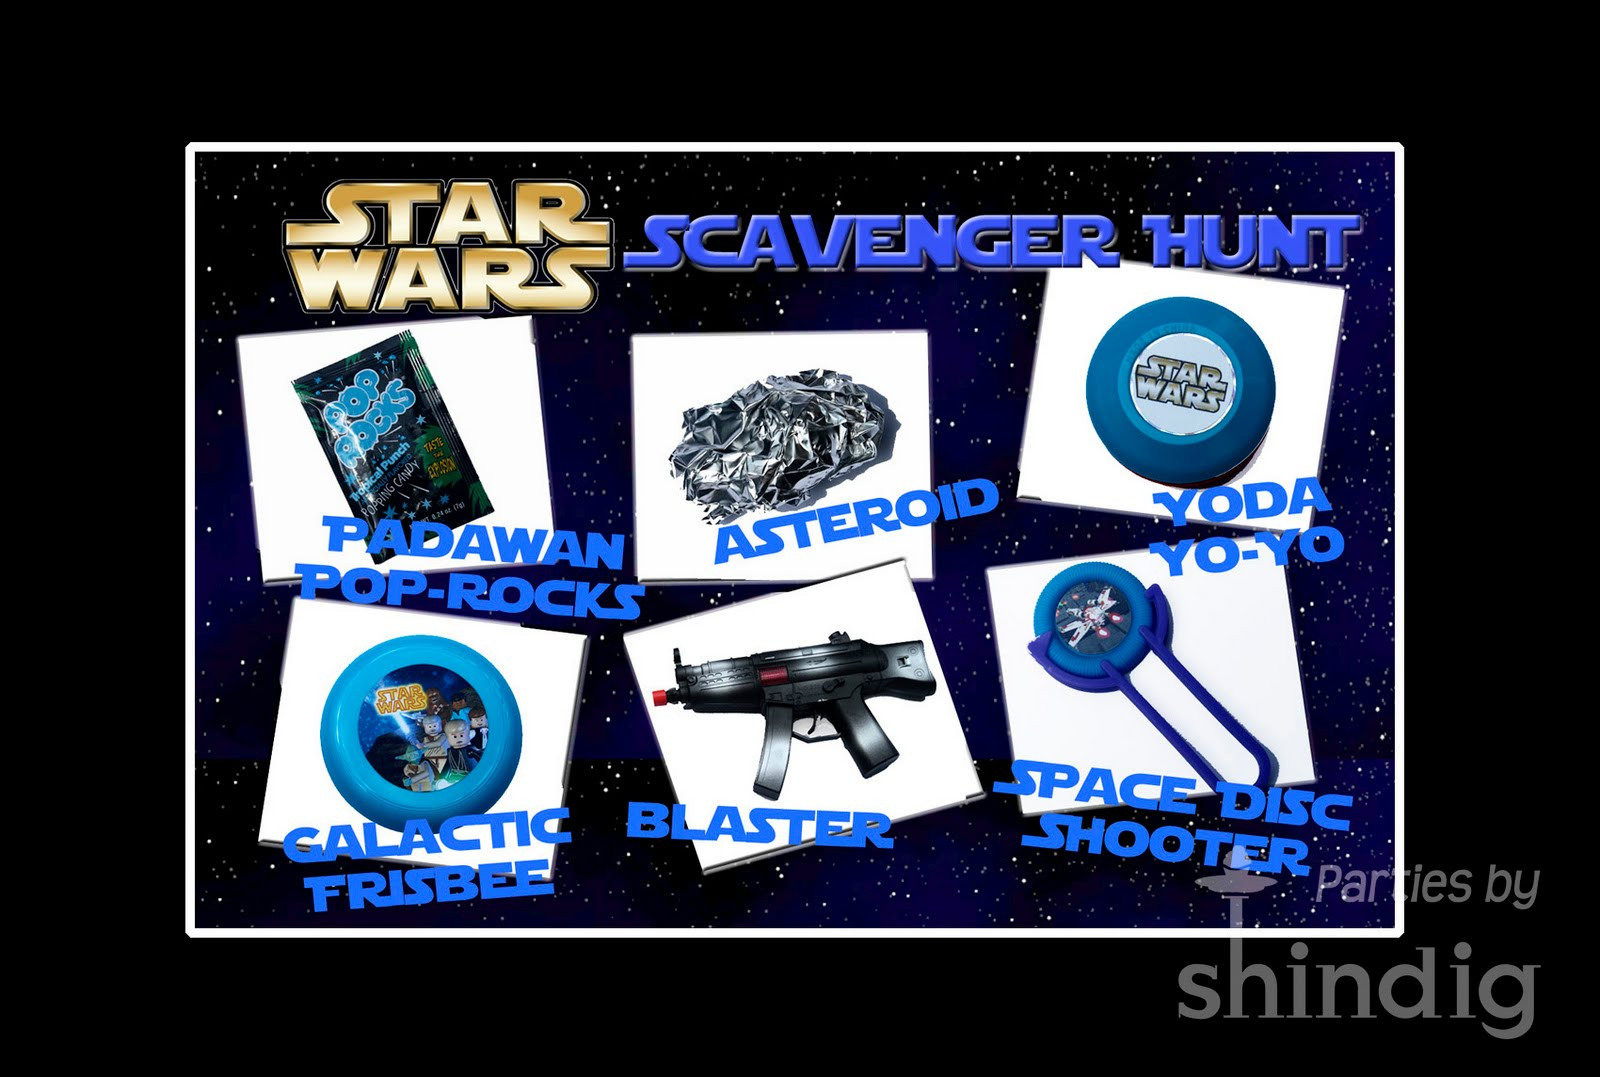 star wars scavenger hunt pdf